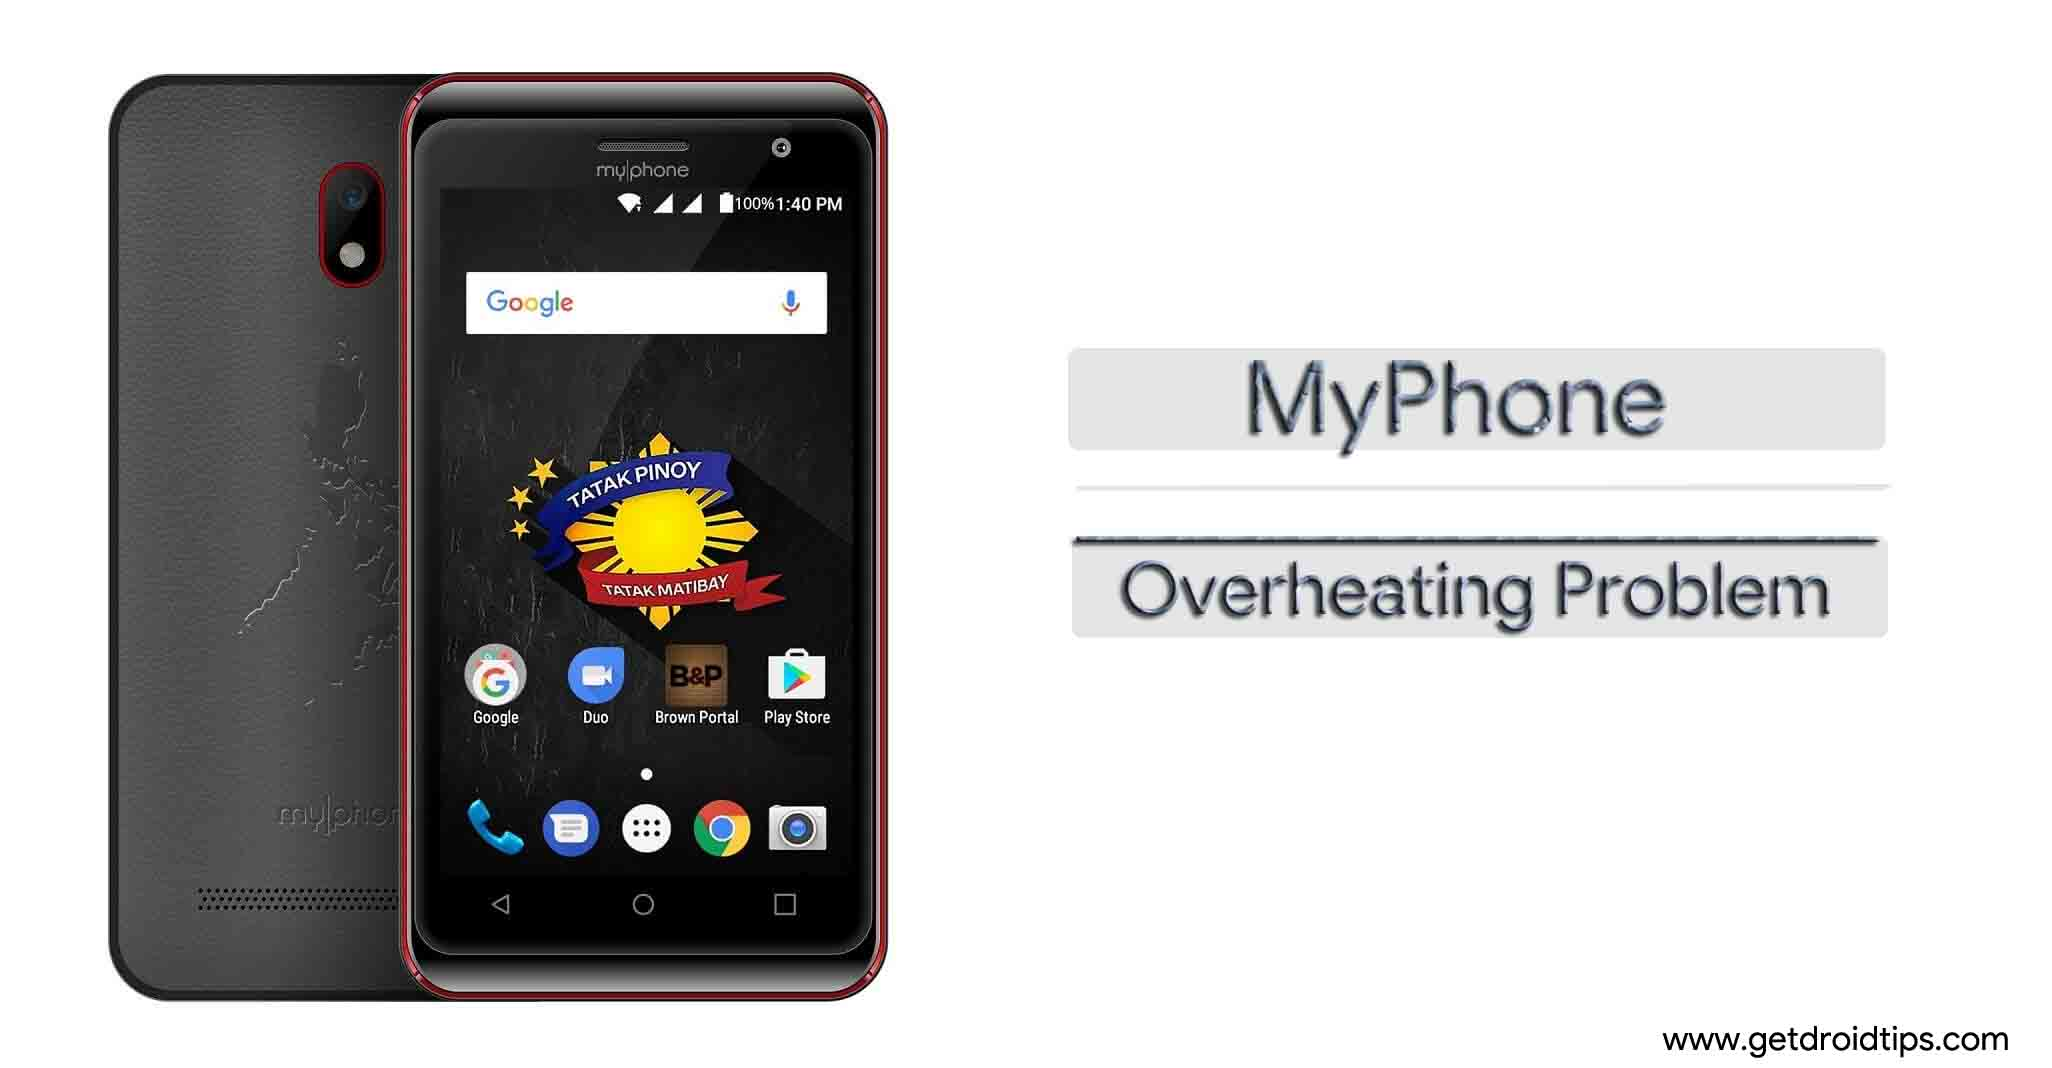 How To Fix MyPhone Overheating Problem - Troubleshooting Fix & Tips